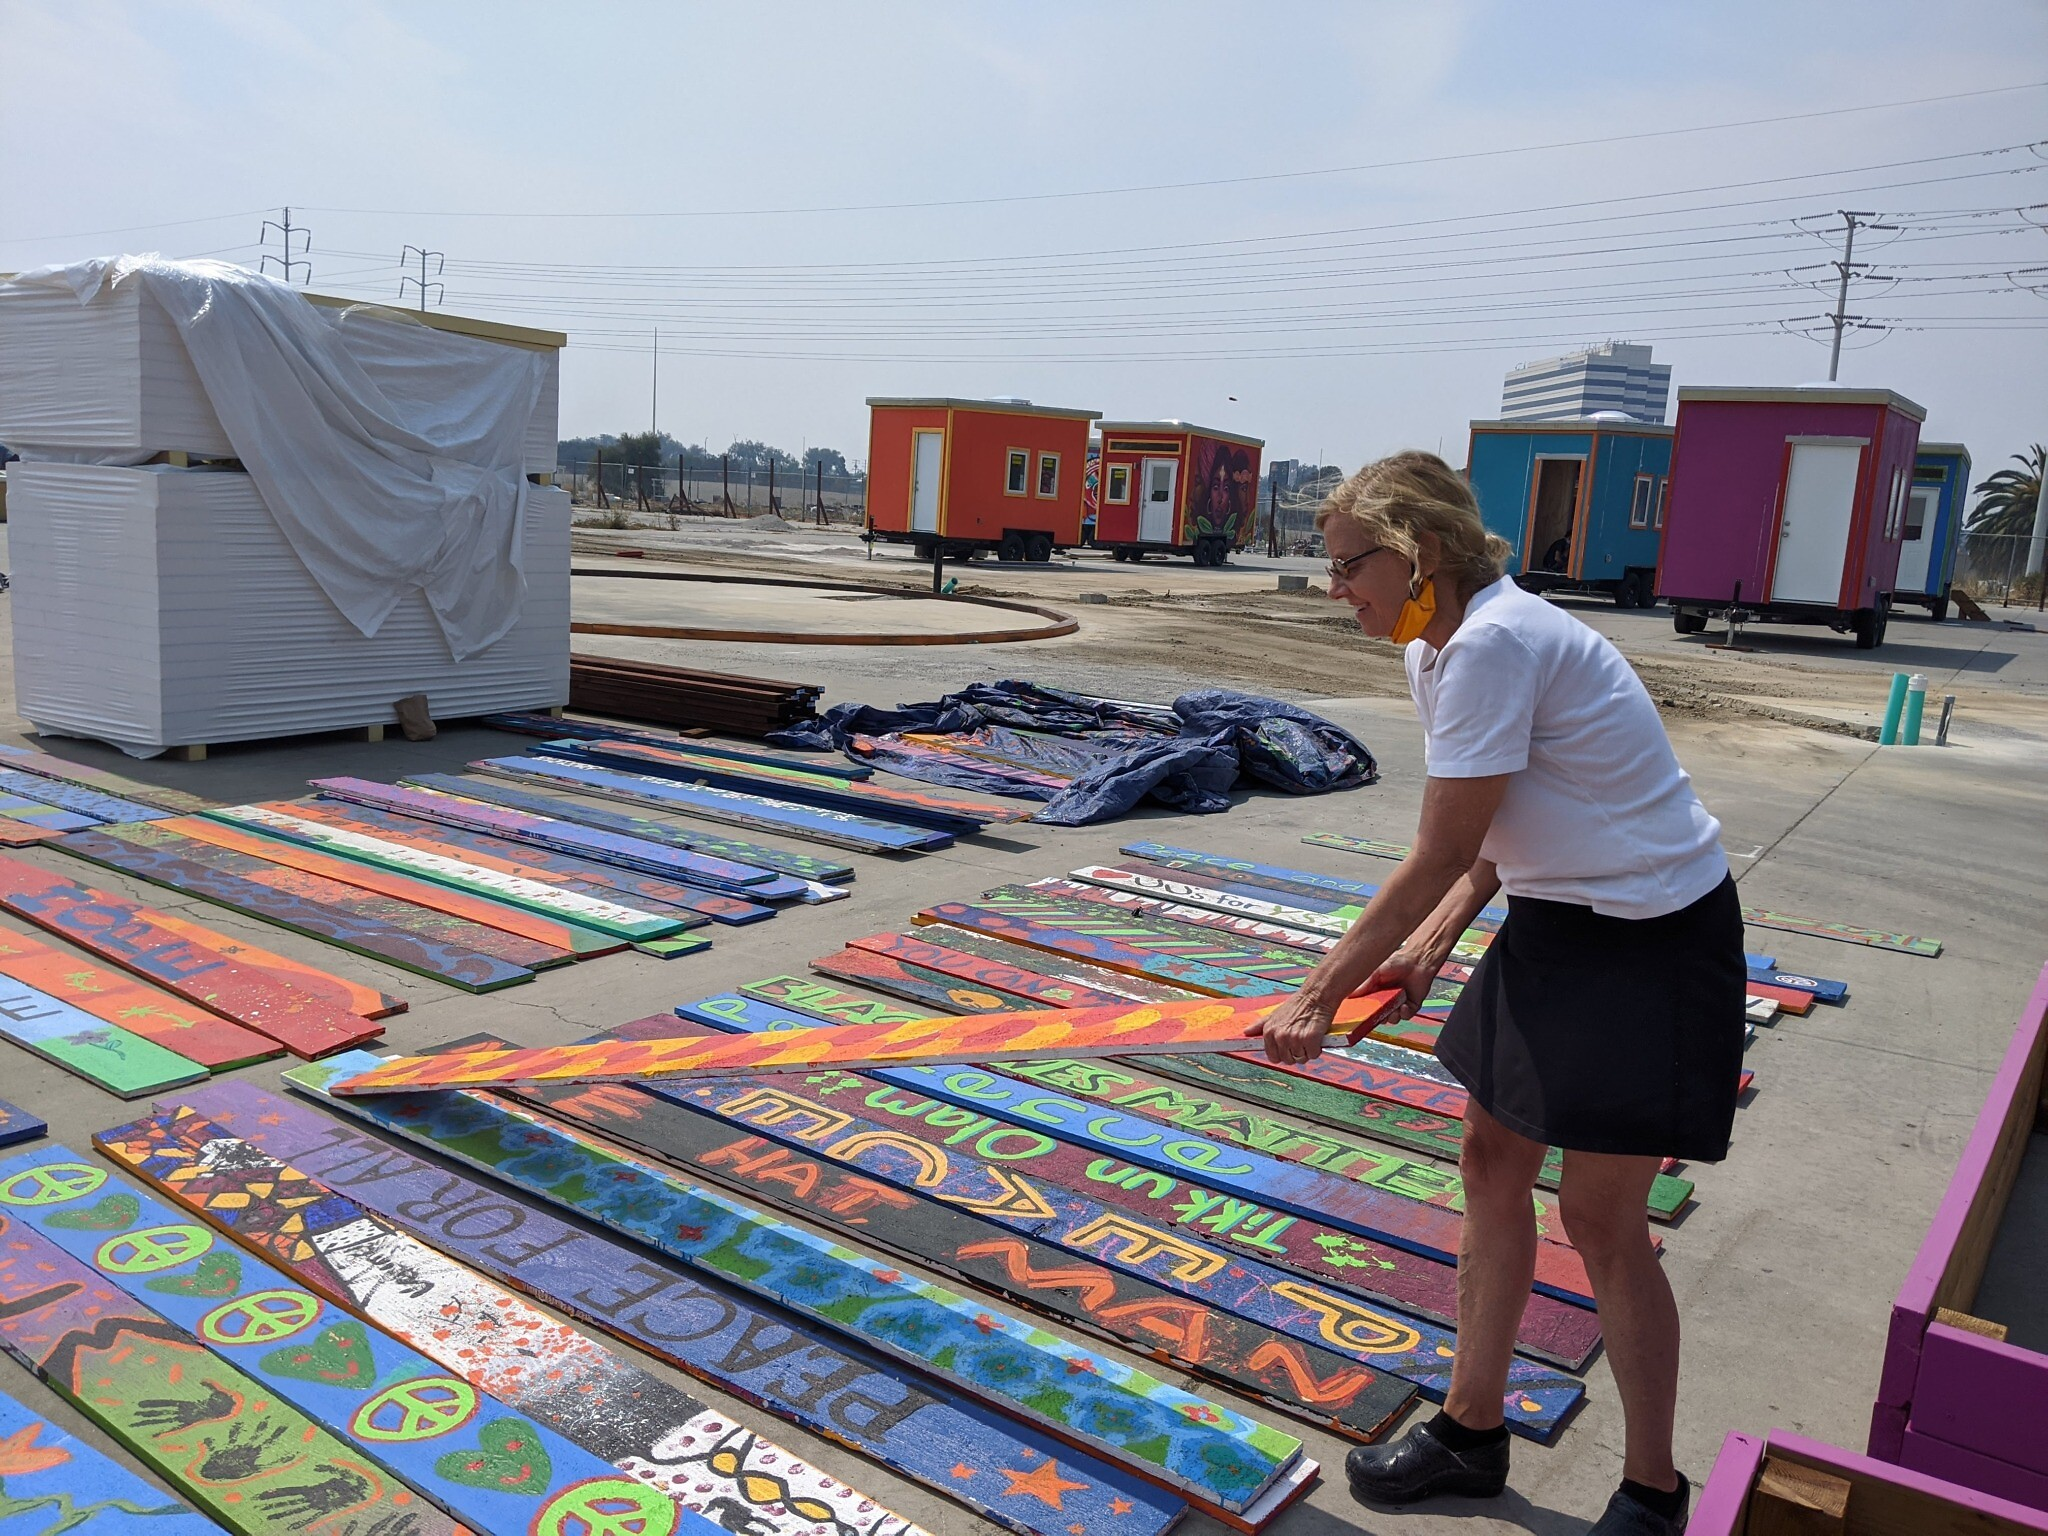 Sally Hindman, Youth Spirit Artworks founder and director, arranges some of the prayer and blessing planks for the perimeter fence at the YSA Tiny House Village in Oakland, California on September 20, 2020. (Melanie Lidman/Times of Israel)